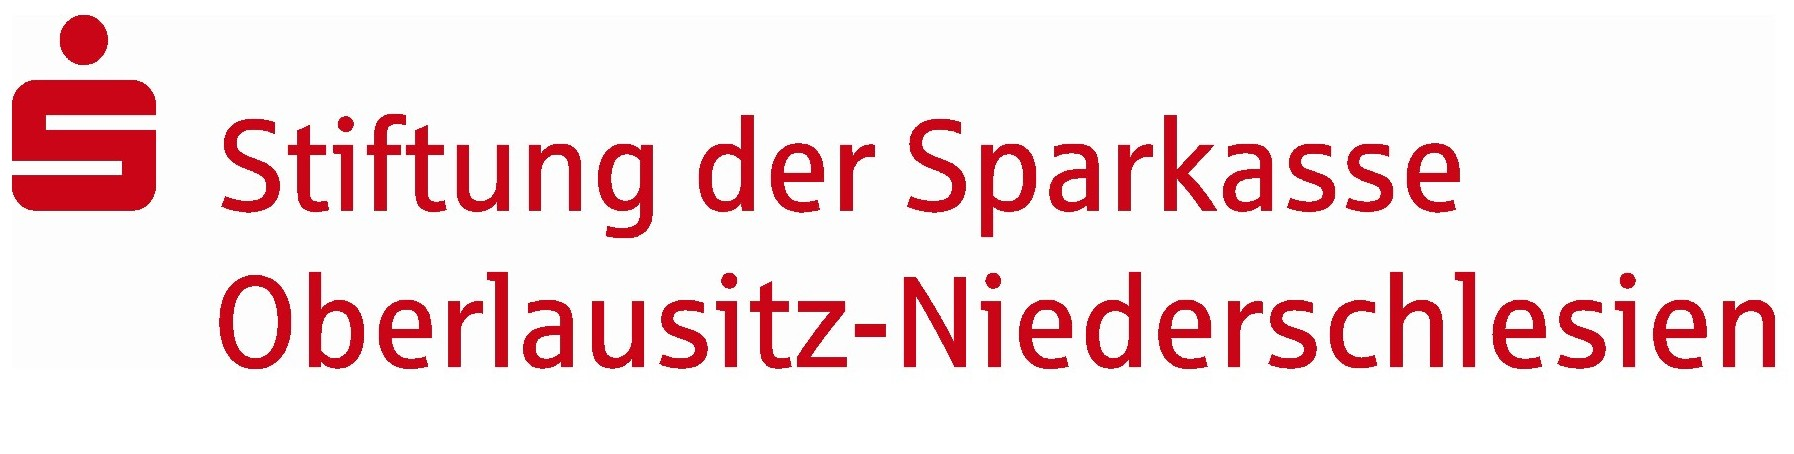 Sparkasse Stiftung